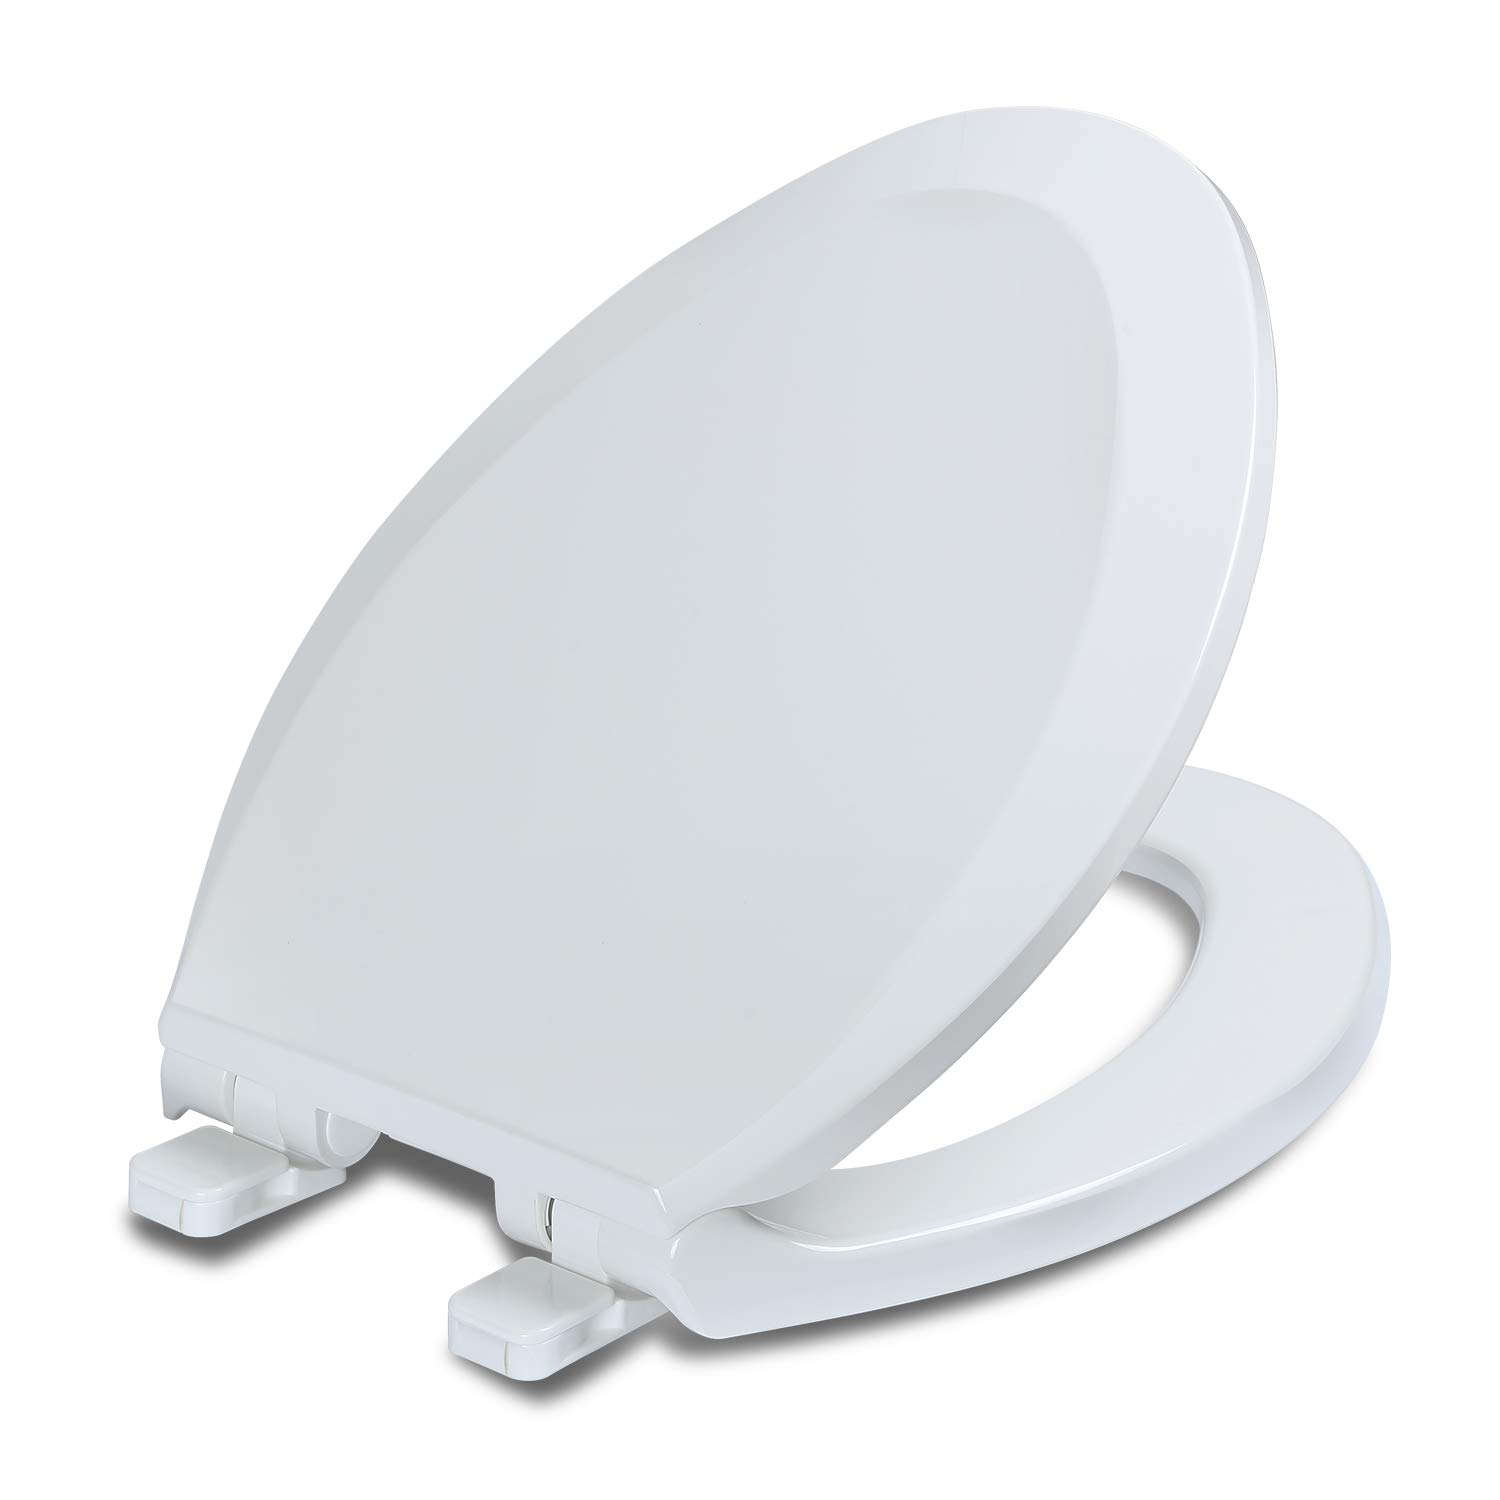 Miraculous Elongated Toilet Seats With Lid Quiet Close Fits Standard Elongated Or Oblong Toilets Slow Close Seat And Cover Oval White Andrewgaddart Wooden Chair Designs For Living Room Andrewgaddartcom